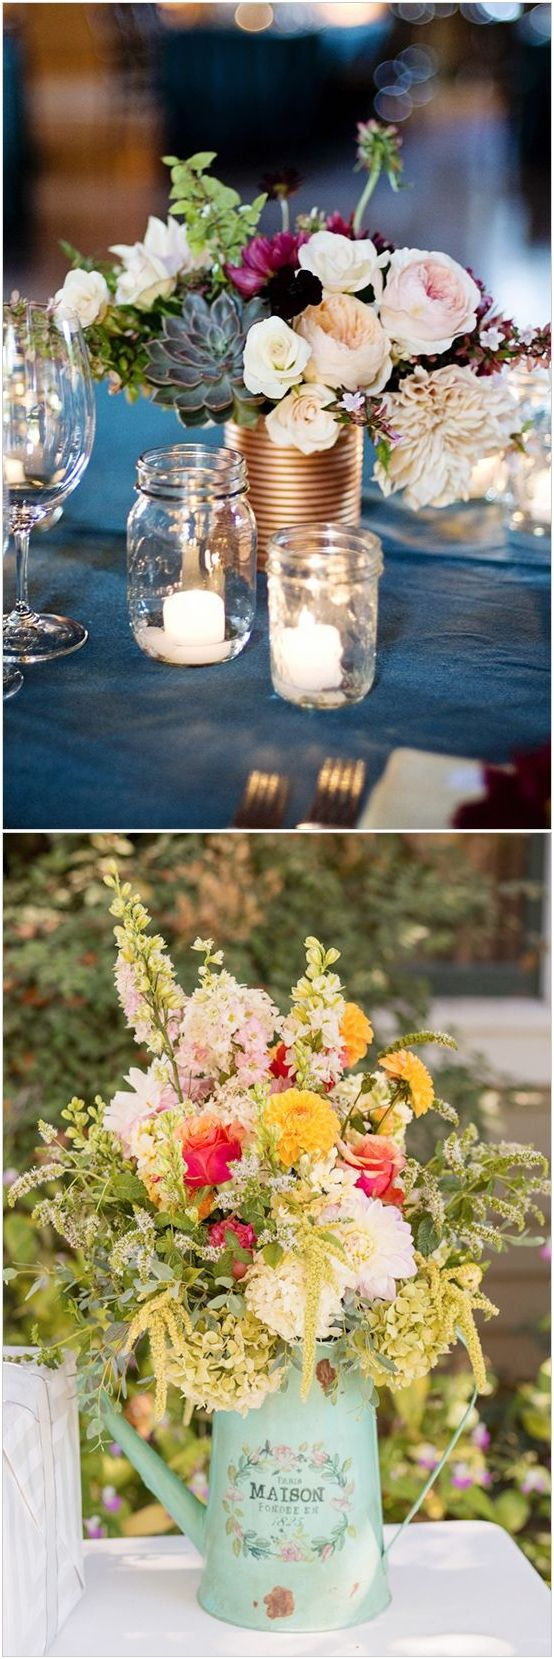 Rustic farm bucket tin-can and watering-can wedding centerpieces #wedding #weddingideas #centerpieces #vintage / http://www.deerpearlflowers.com/wedding-centerpiece-ideas/2/